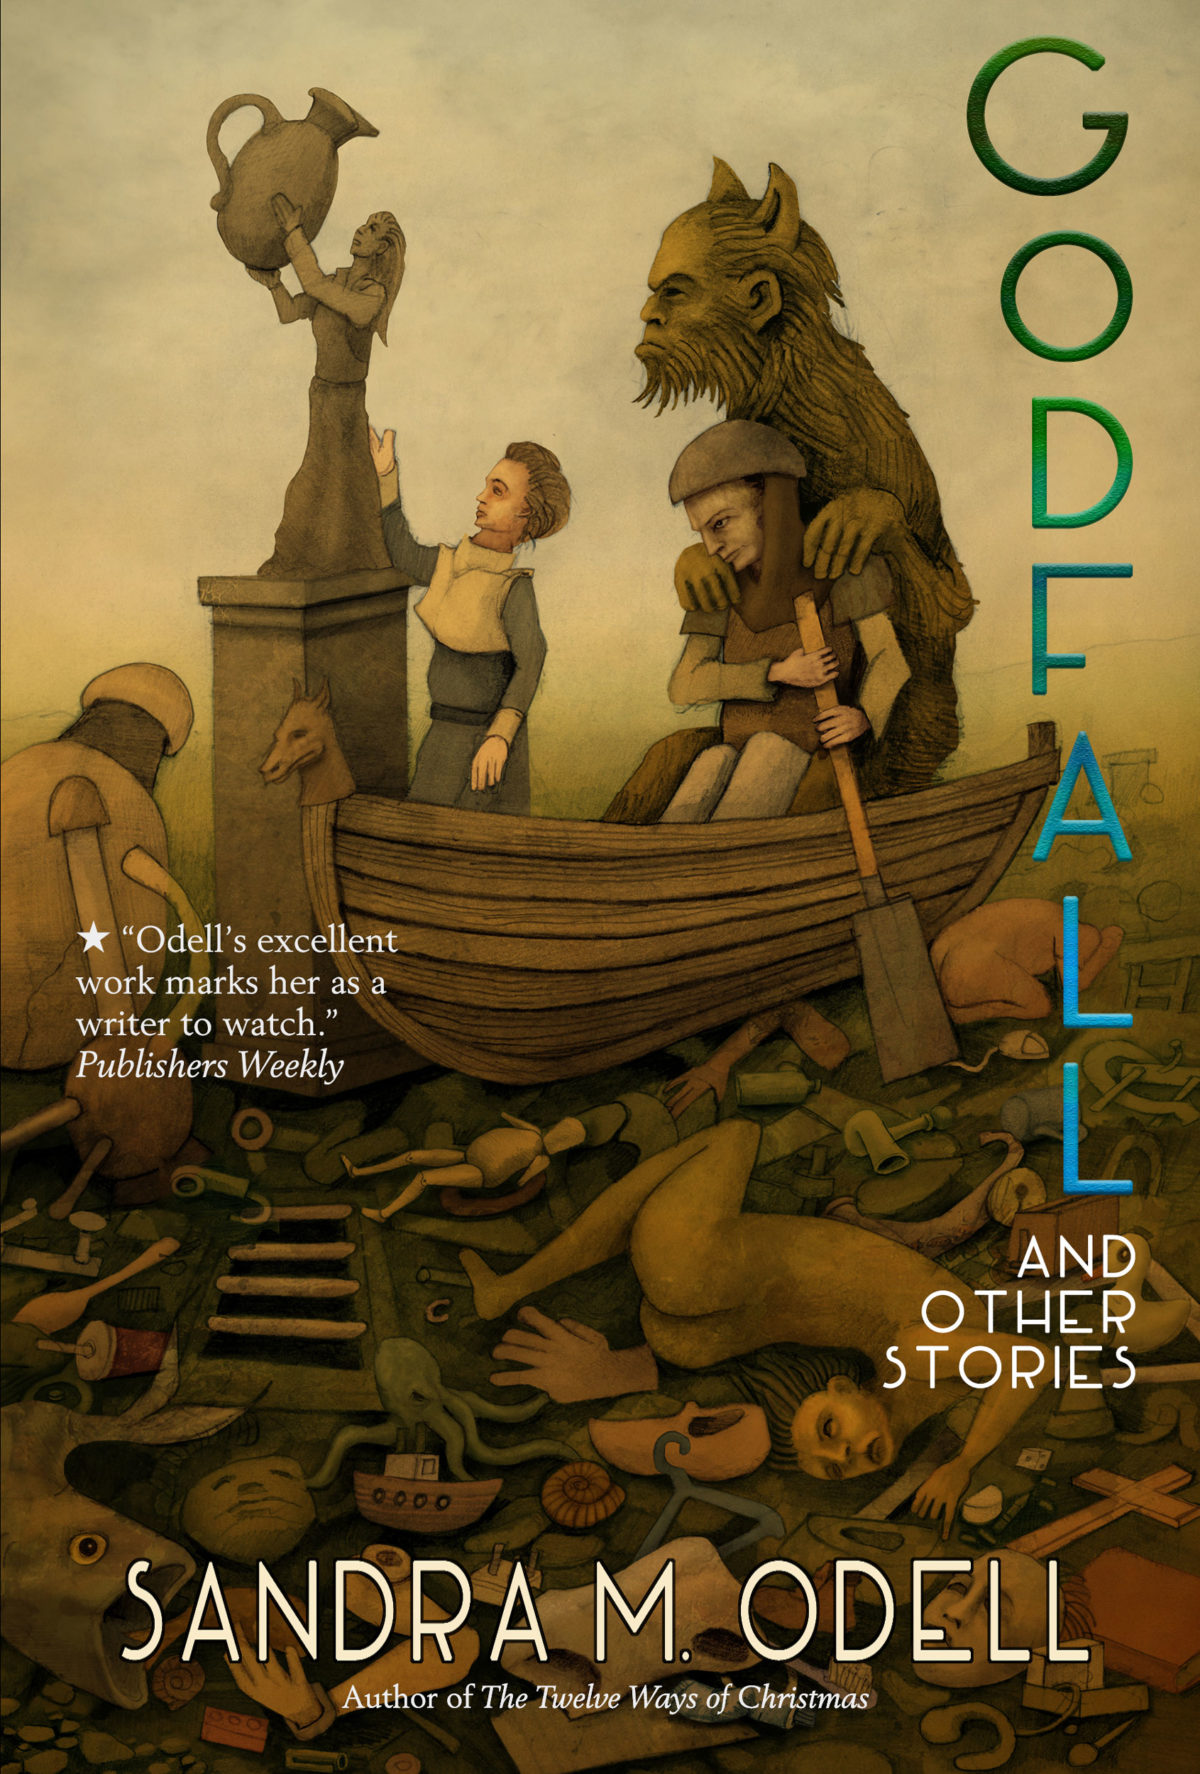 Godfall and other stories